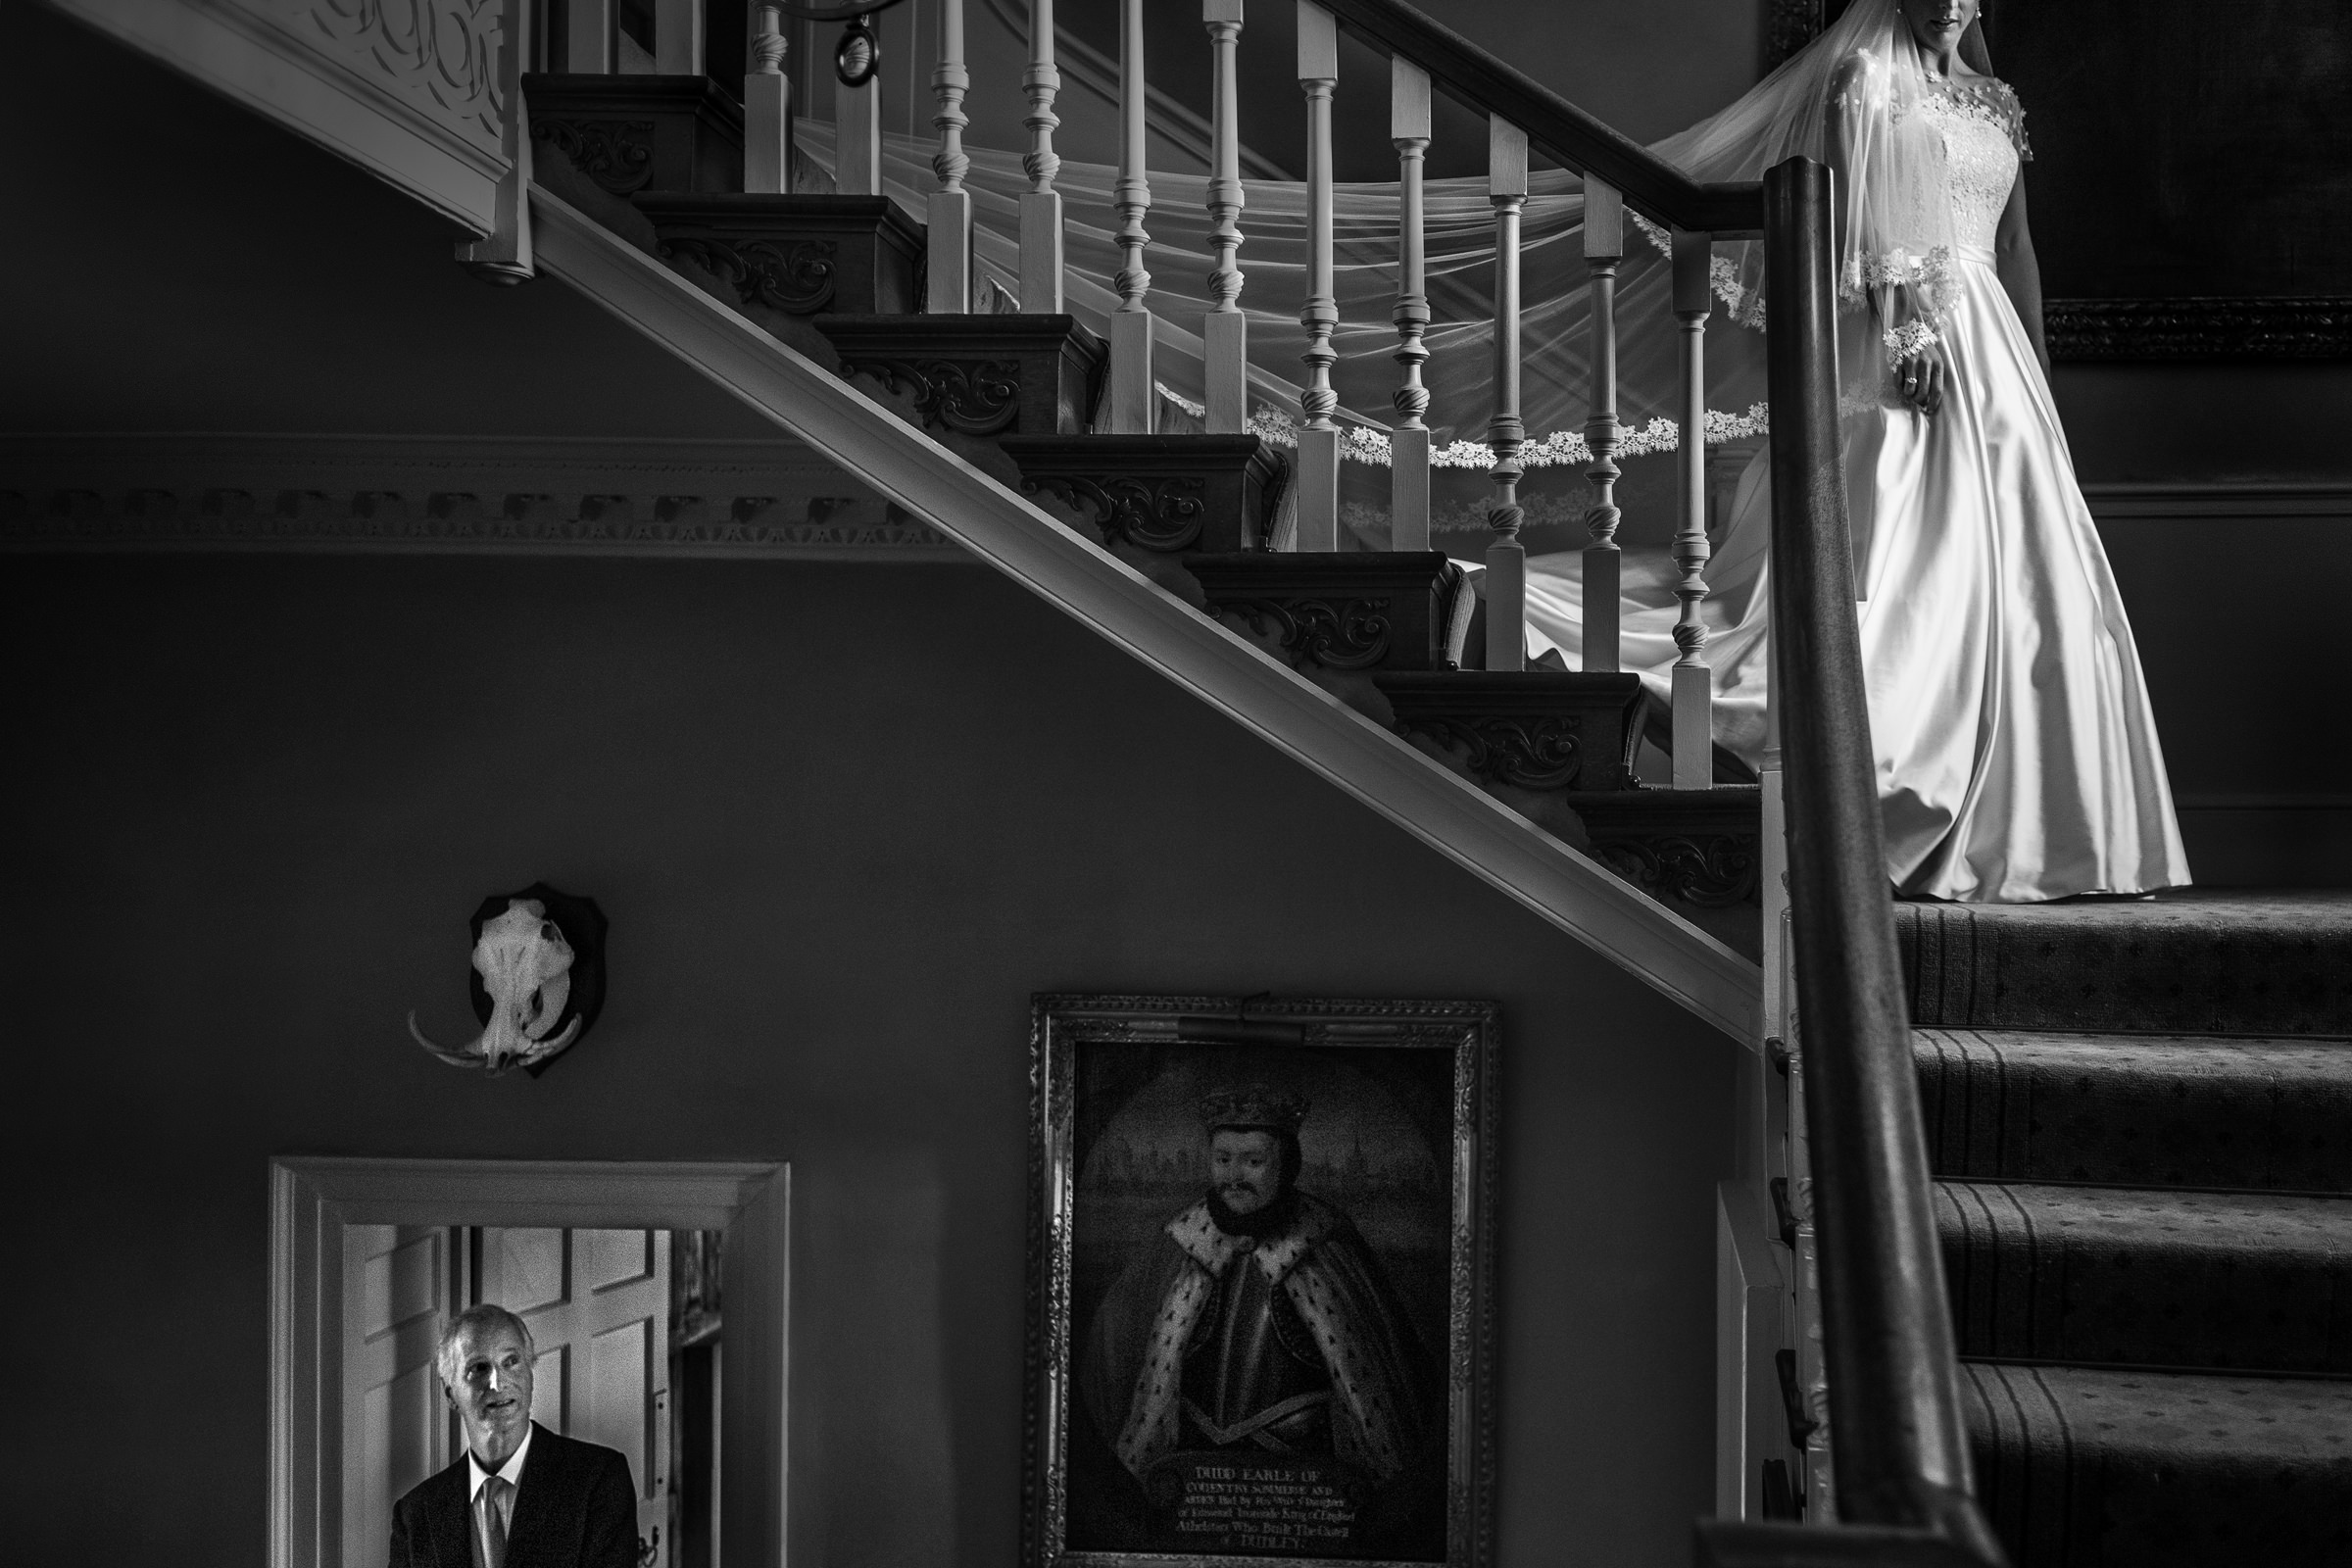 creative-composition-of-bride-descending-stairs-for-first-look-worlds-best-wedding-photos-victor-lax